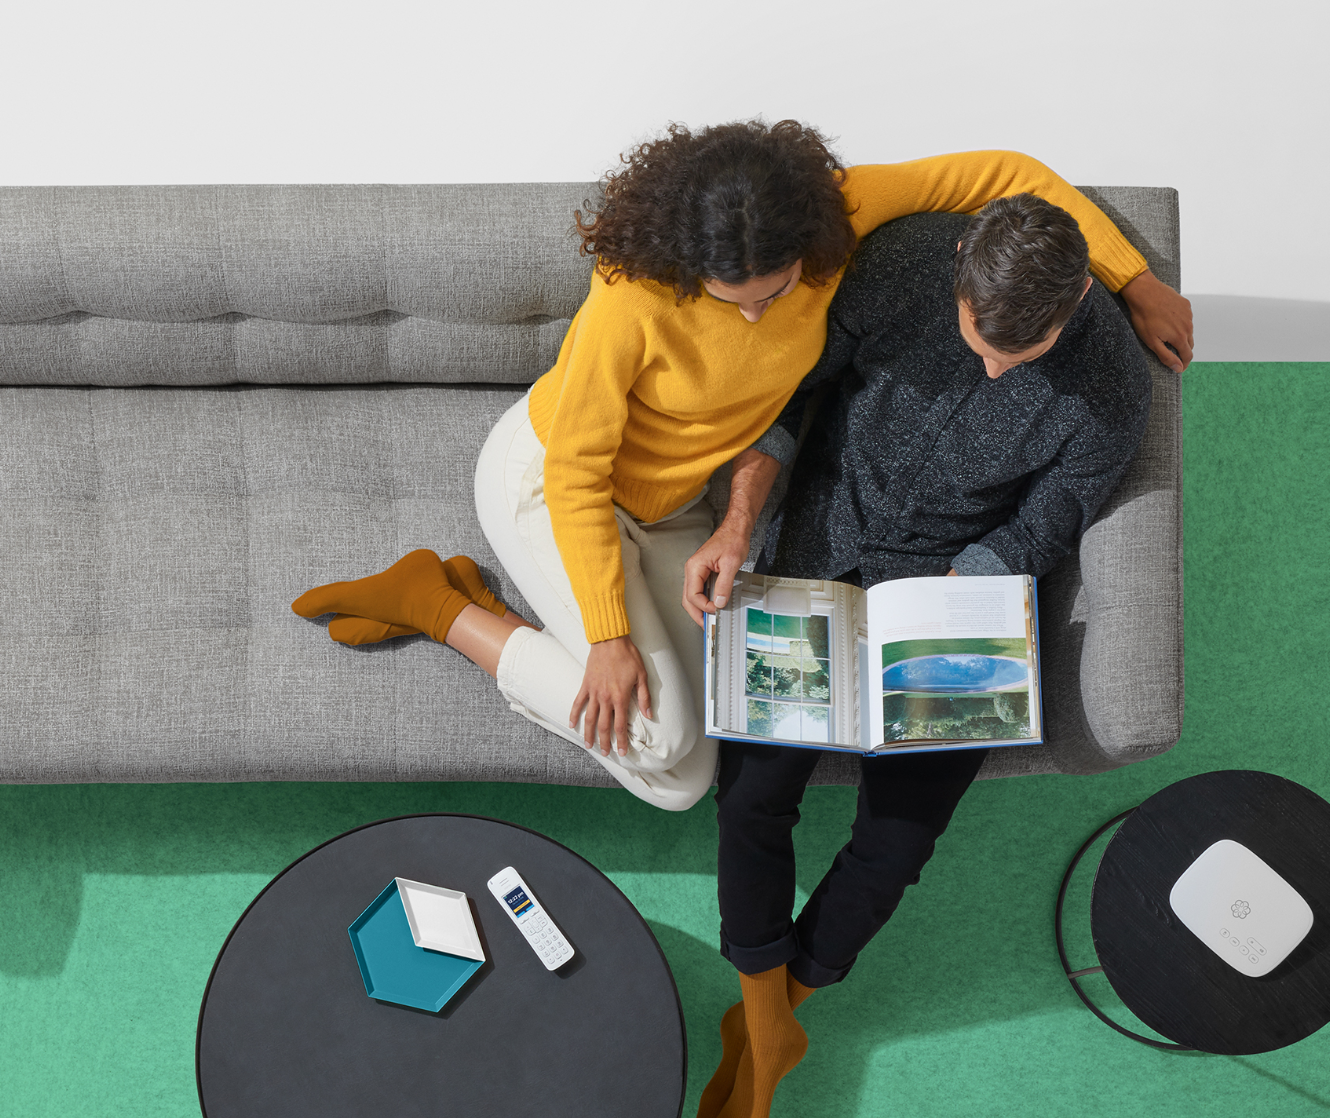 An image of a couple sitting down on sofa, telo handset on the side table